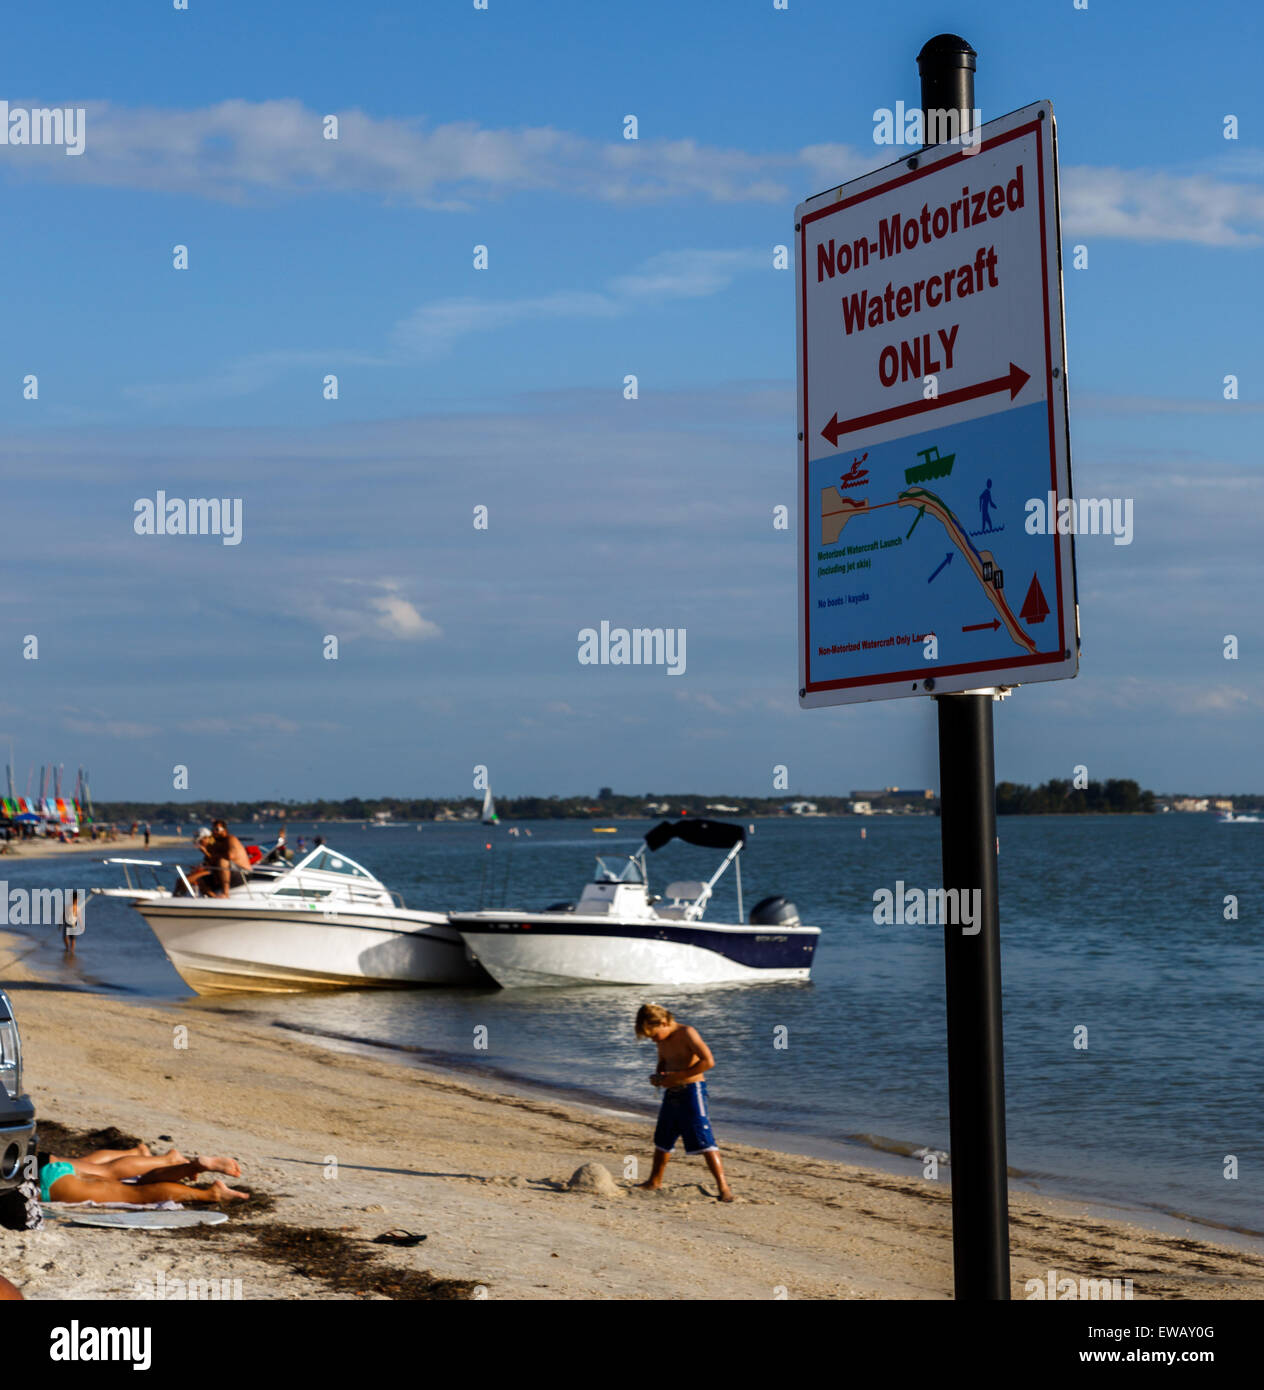 Motor boat owners ignoring Non-motorized watercraft only sign - Stock Image